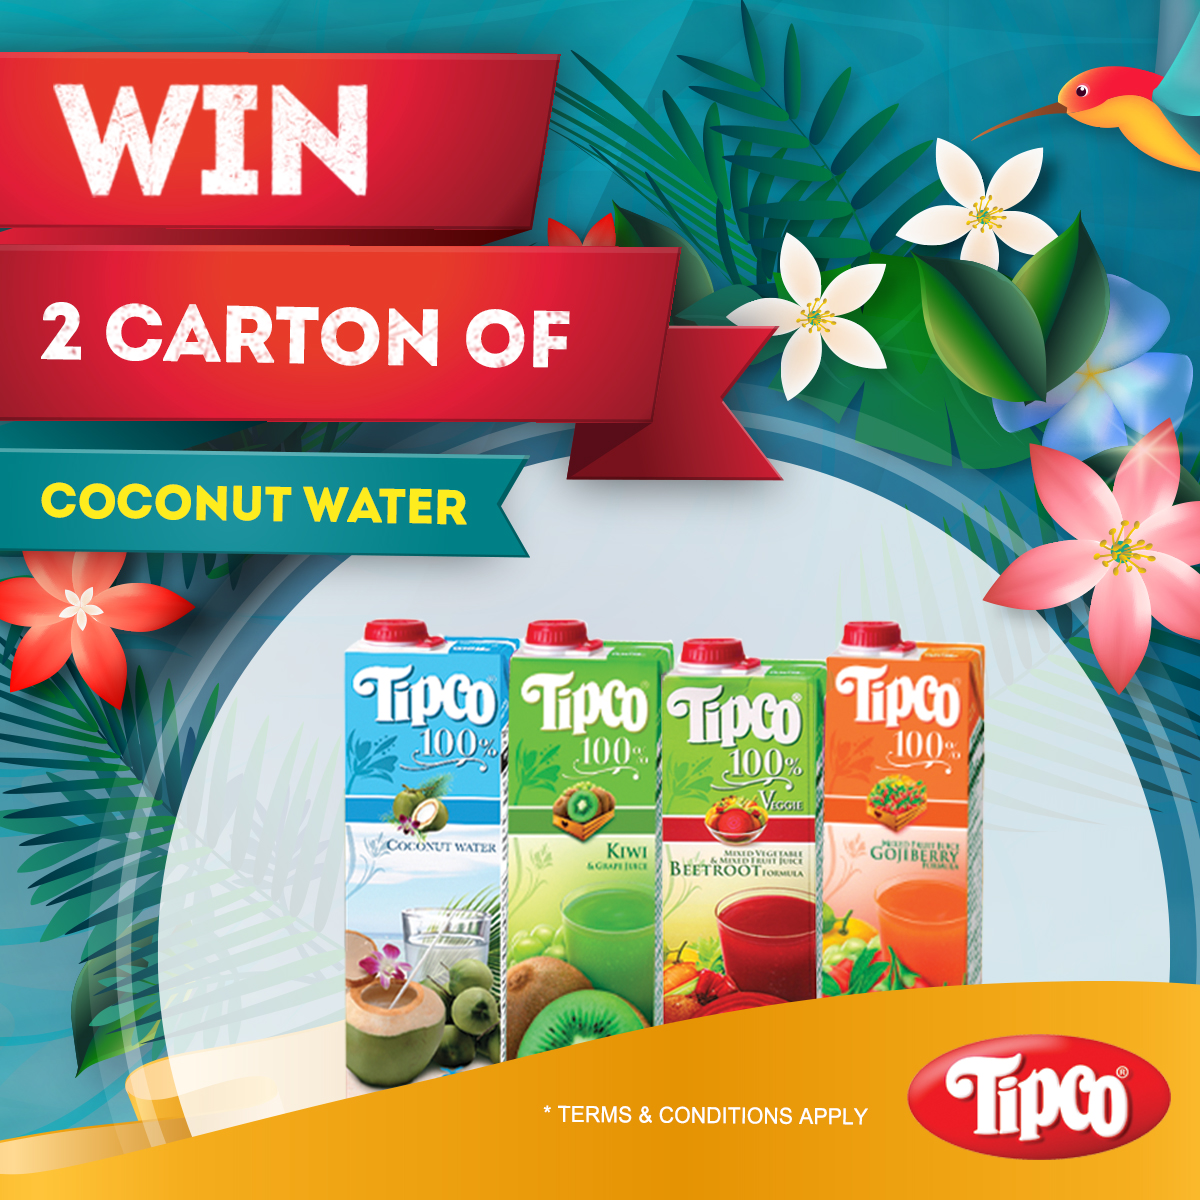 [Win!] 5 sets of 2 carton Tipco coconut water are up for grabs!